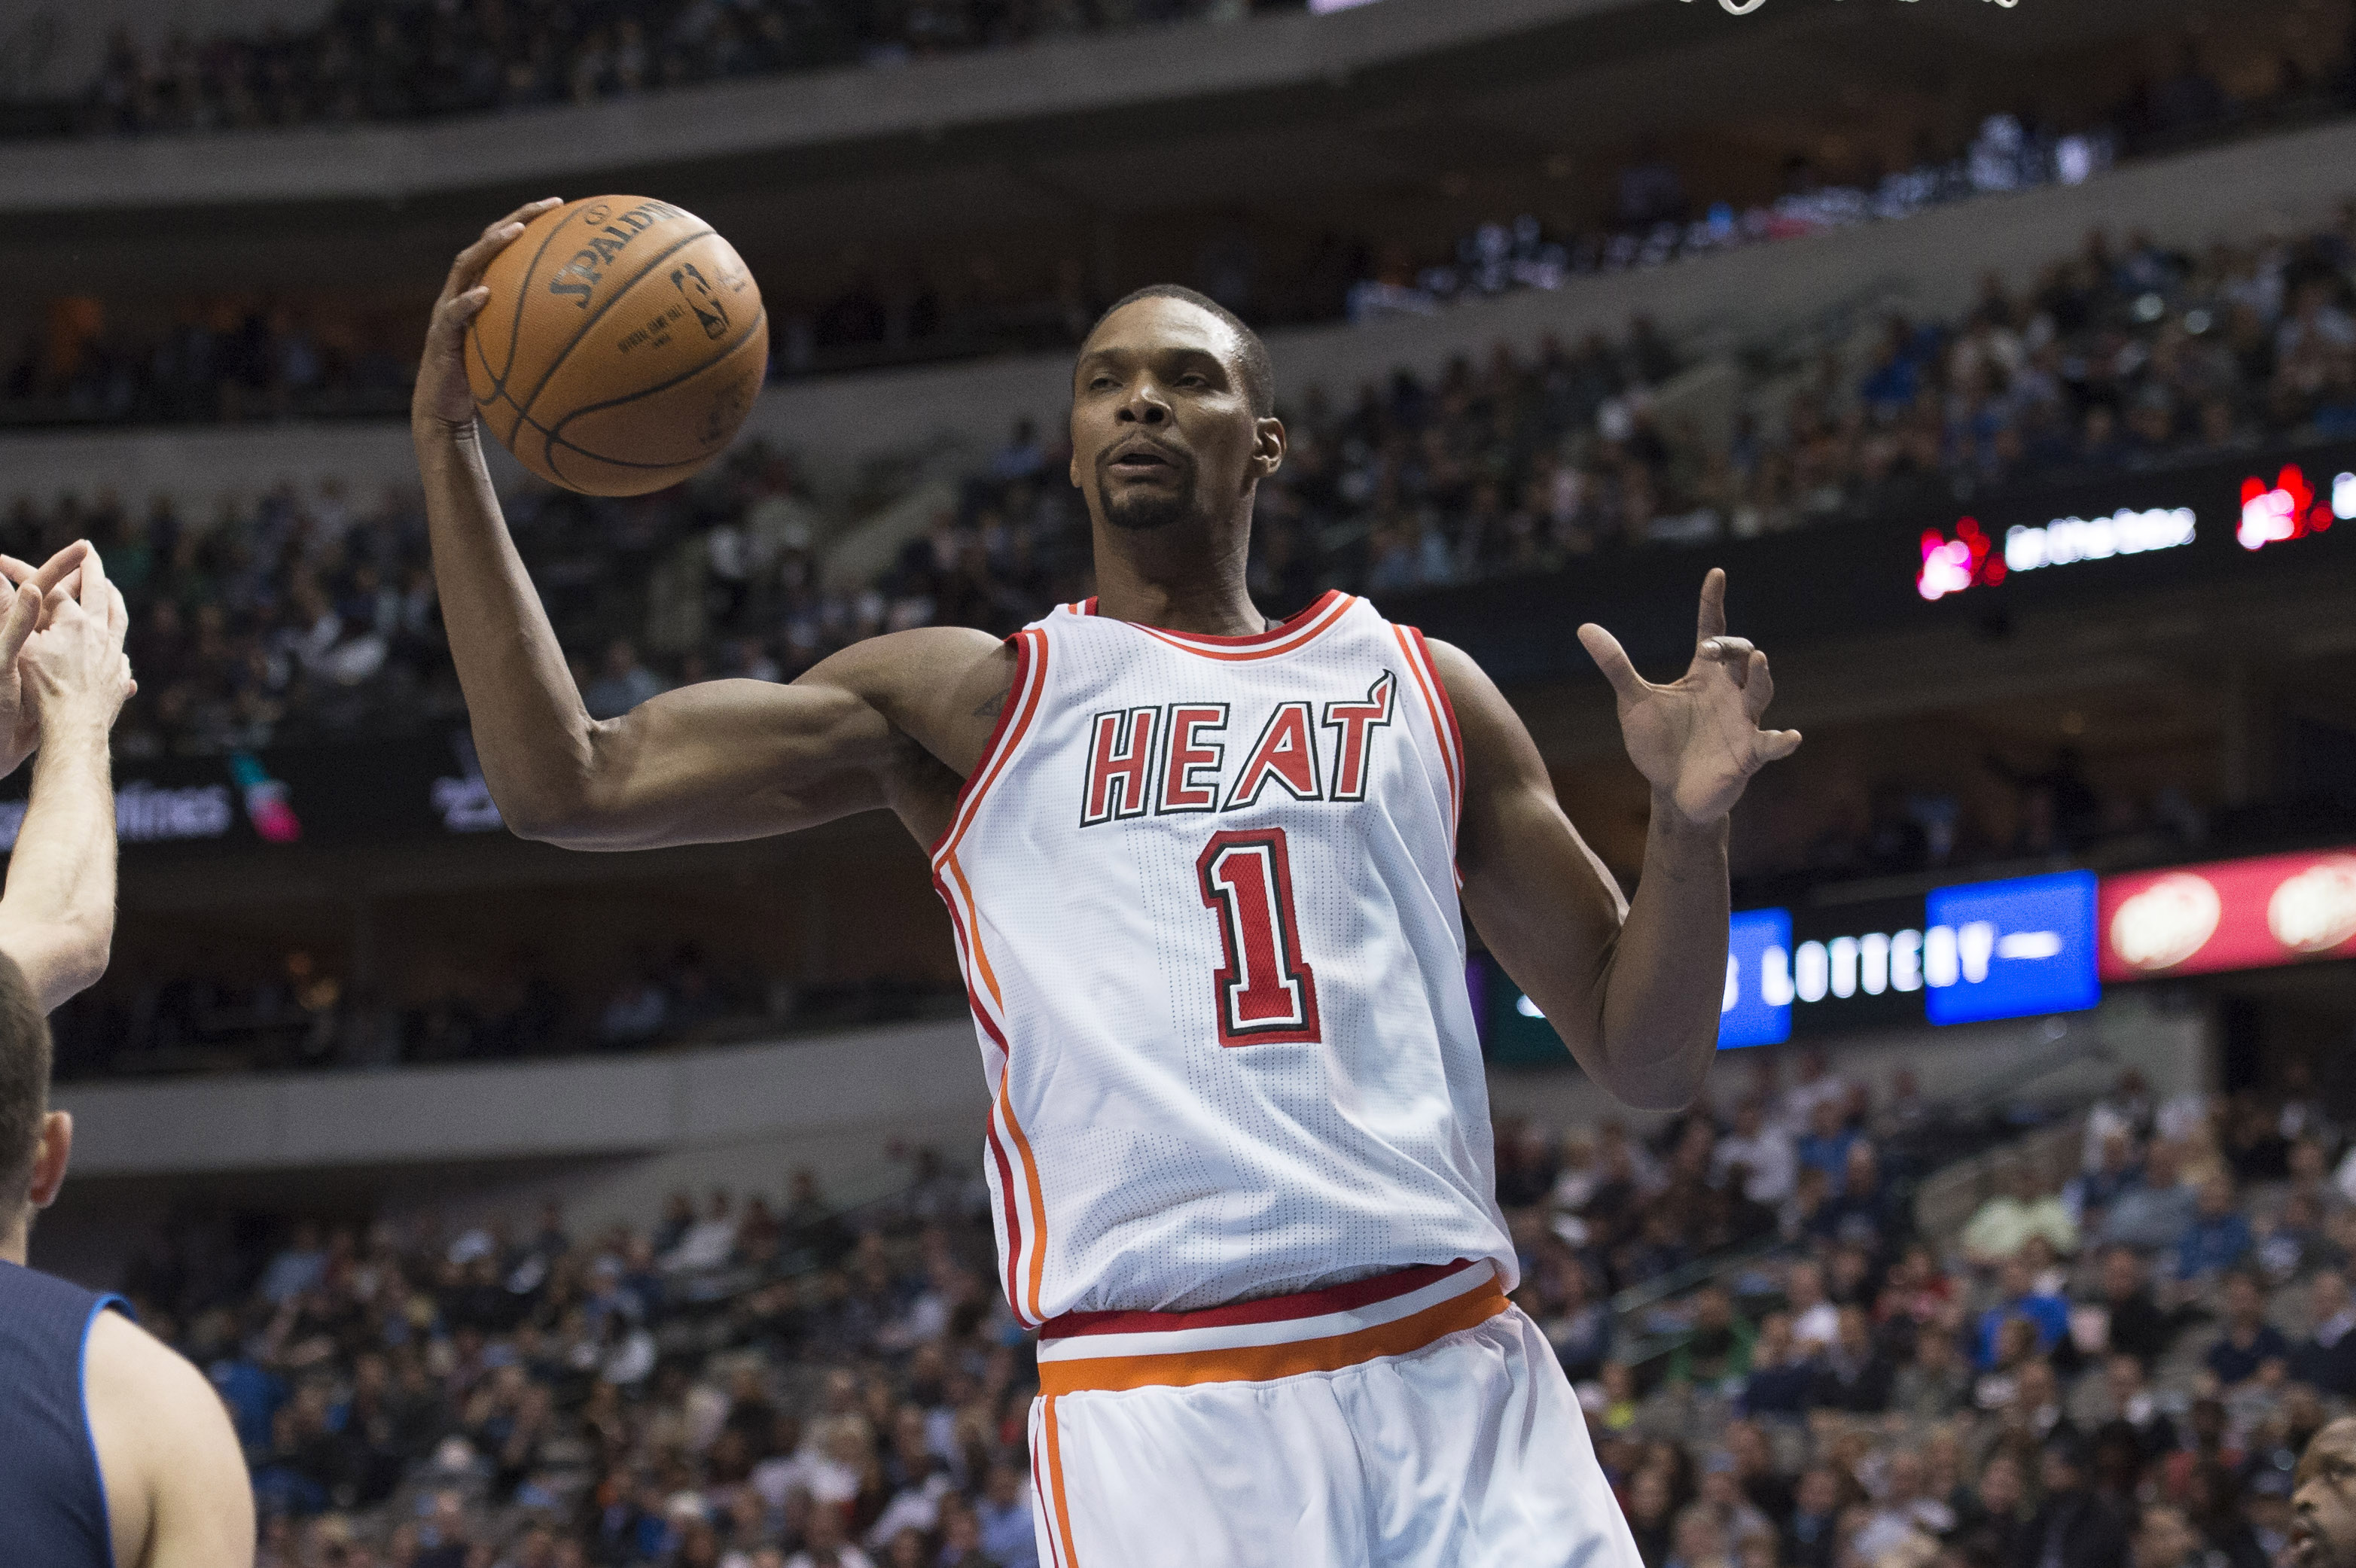 Ho houston rockets nba championship - If Healthy Chris Bosh Could Be The Houston Rockets Missing Puzzle Piece